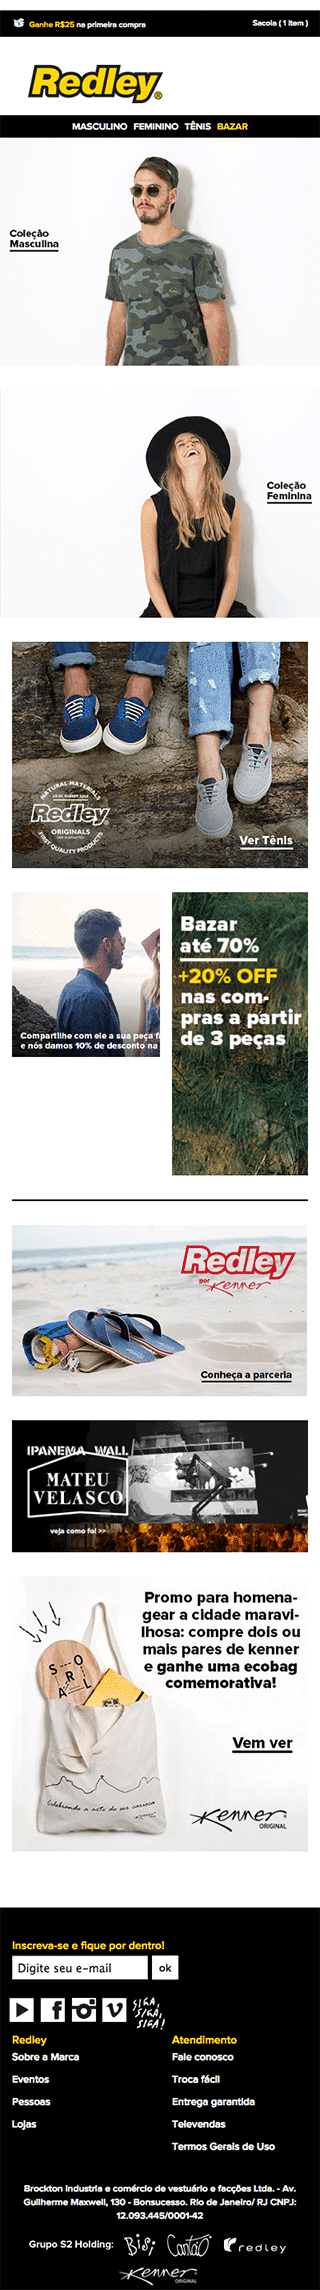 Redley - Version Mobile du site web avant